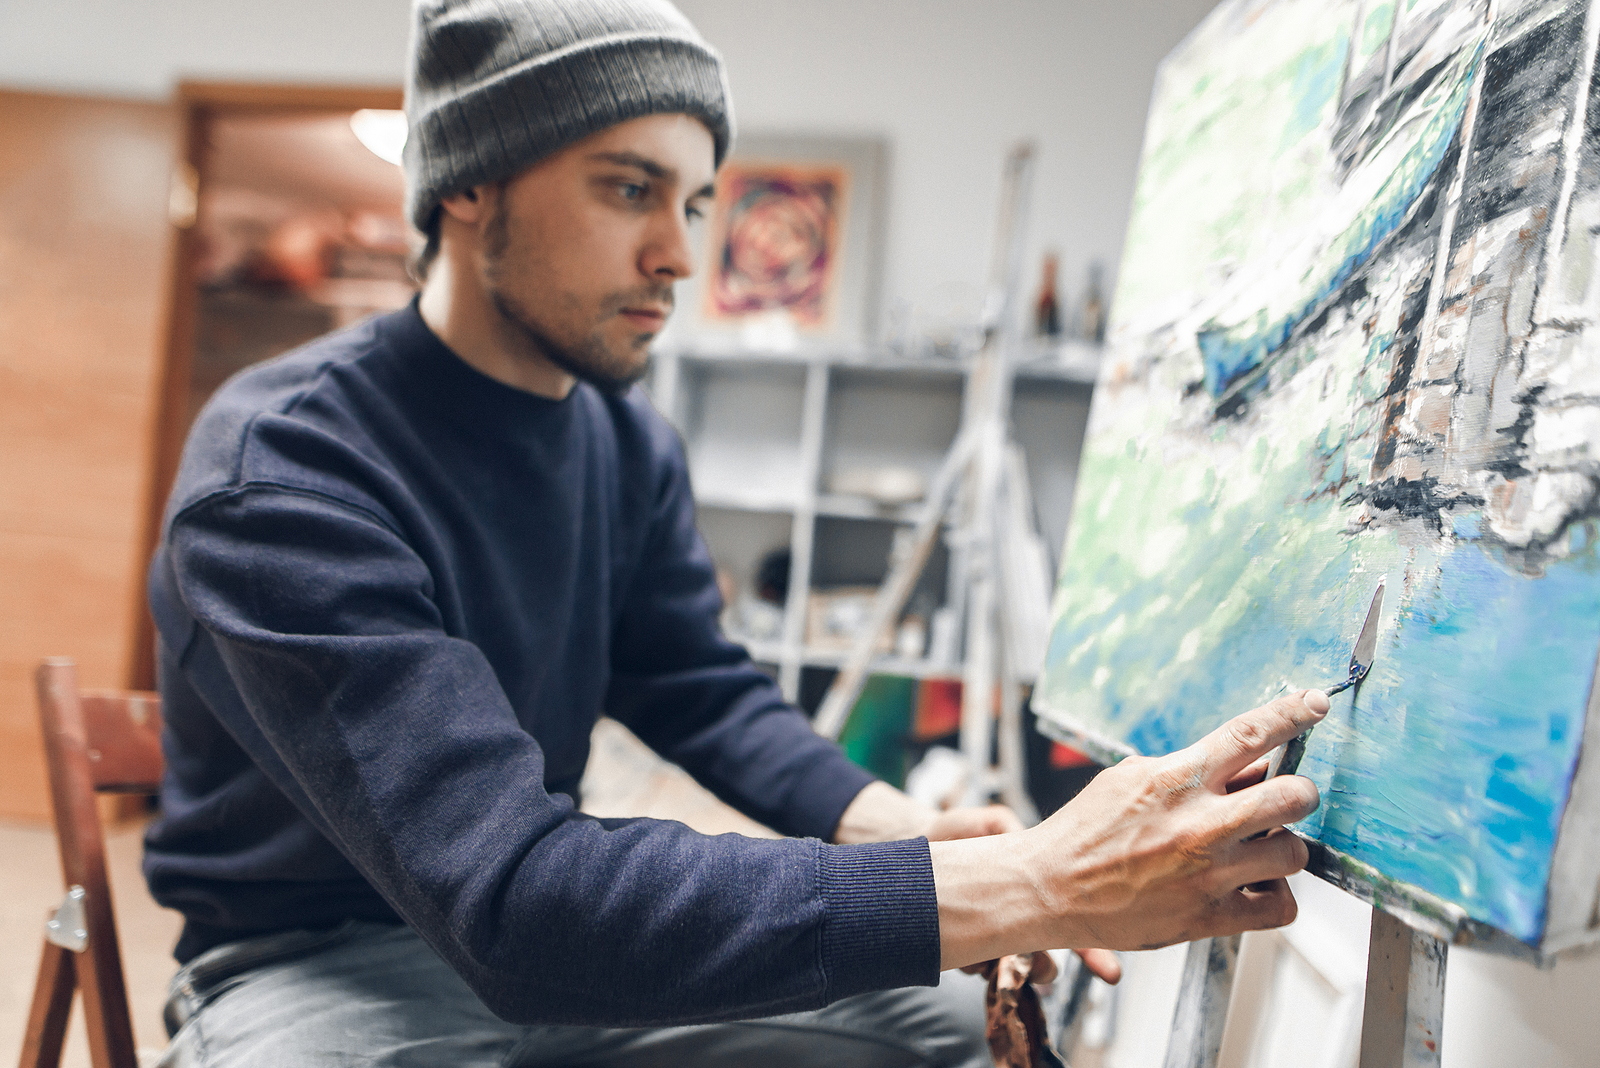 5 Things to Consider If You Want to Become an Artist